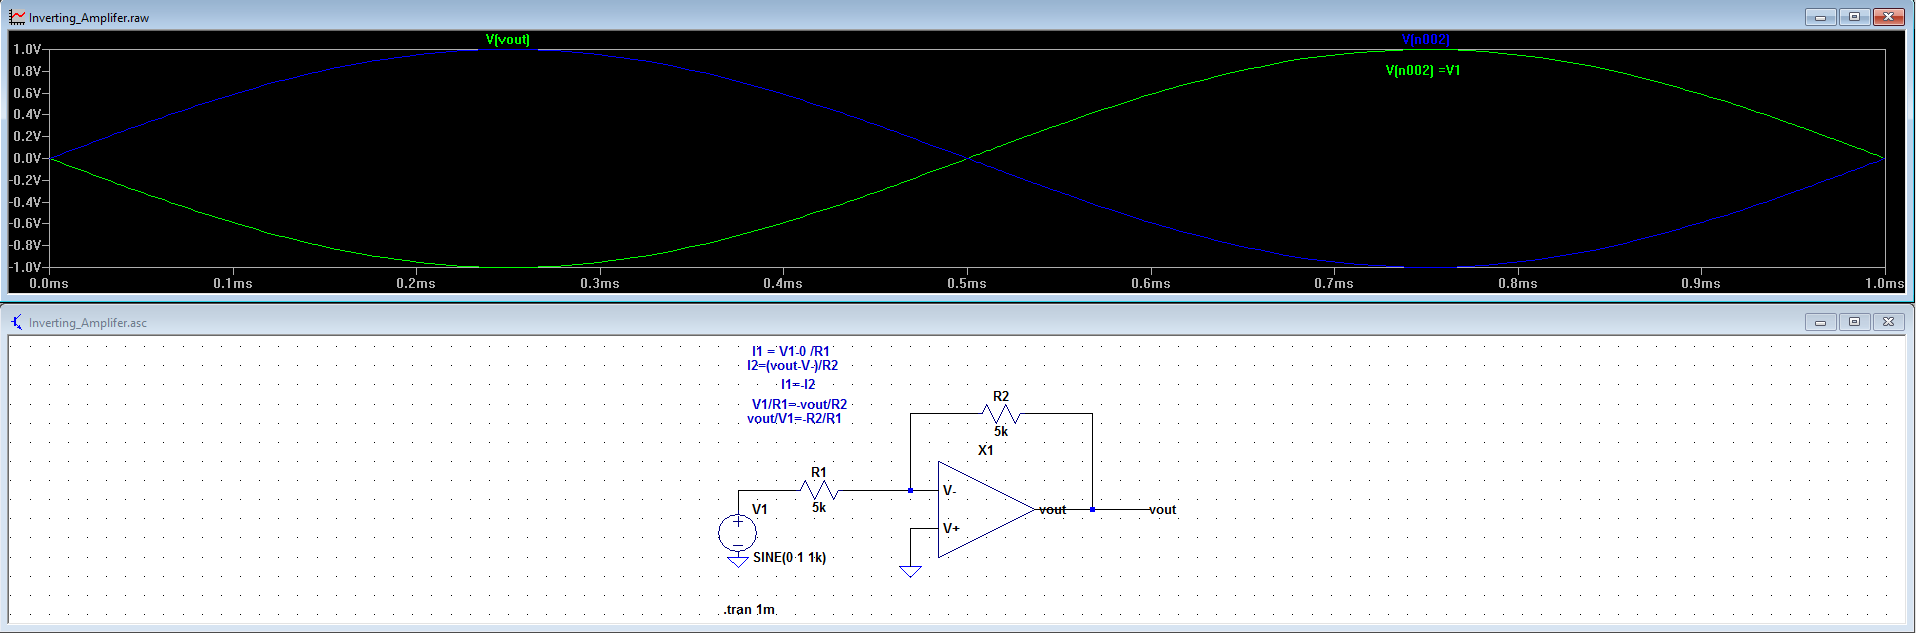 Introduction To Operational Amplifiers With Ltspice Solving Op Amp Circuit Project The Summing Amplifier